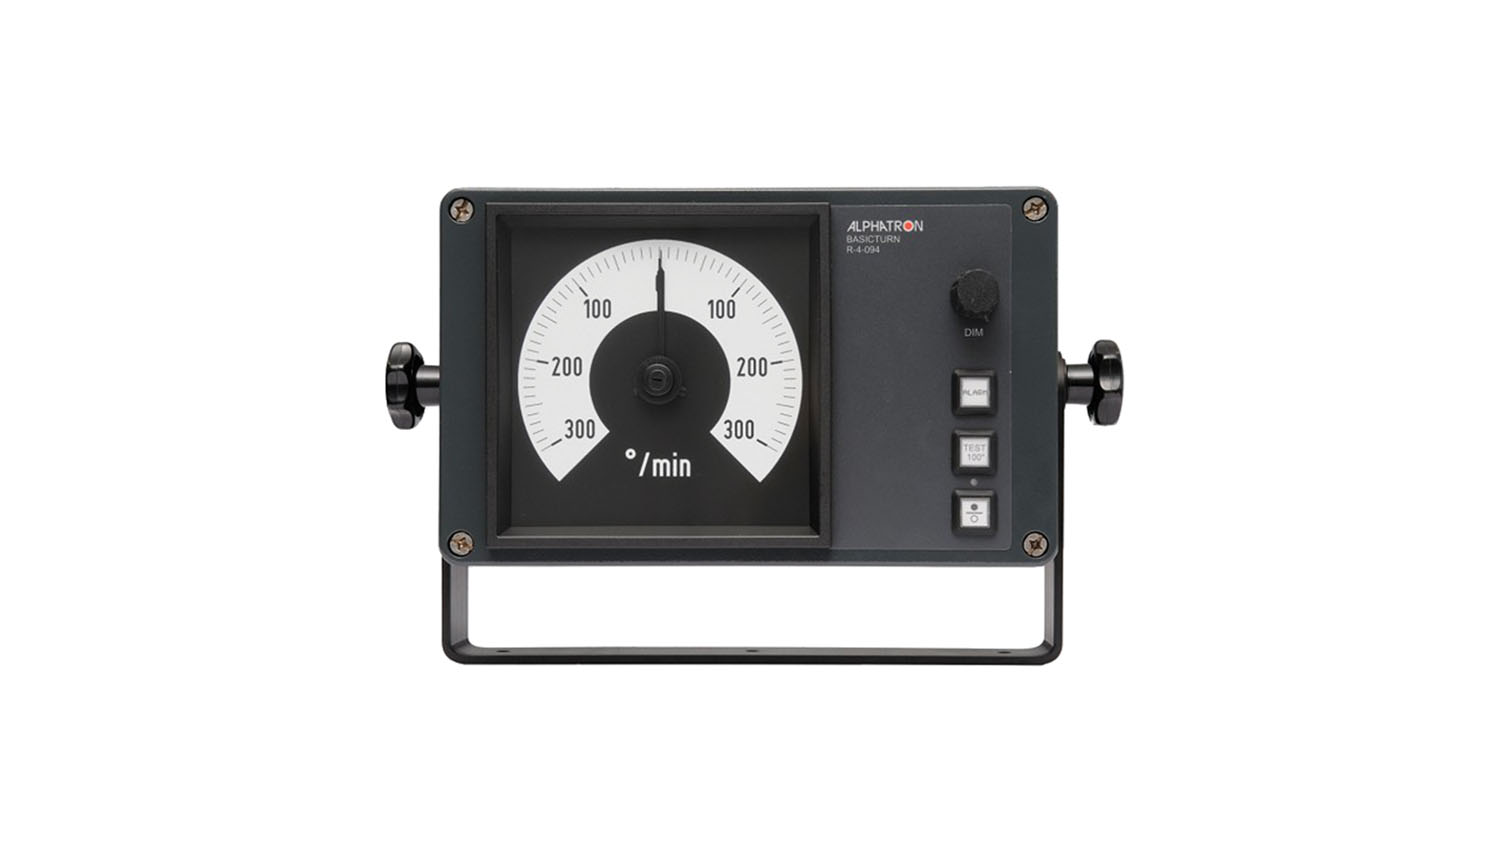 The Basicturn swing meter, with galvanic separated signal output, an alarm output and other features for inland shippers.